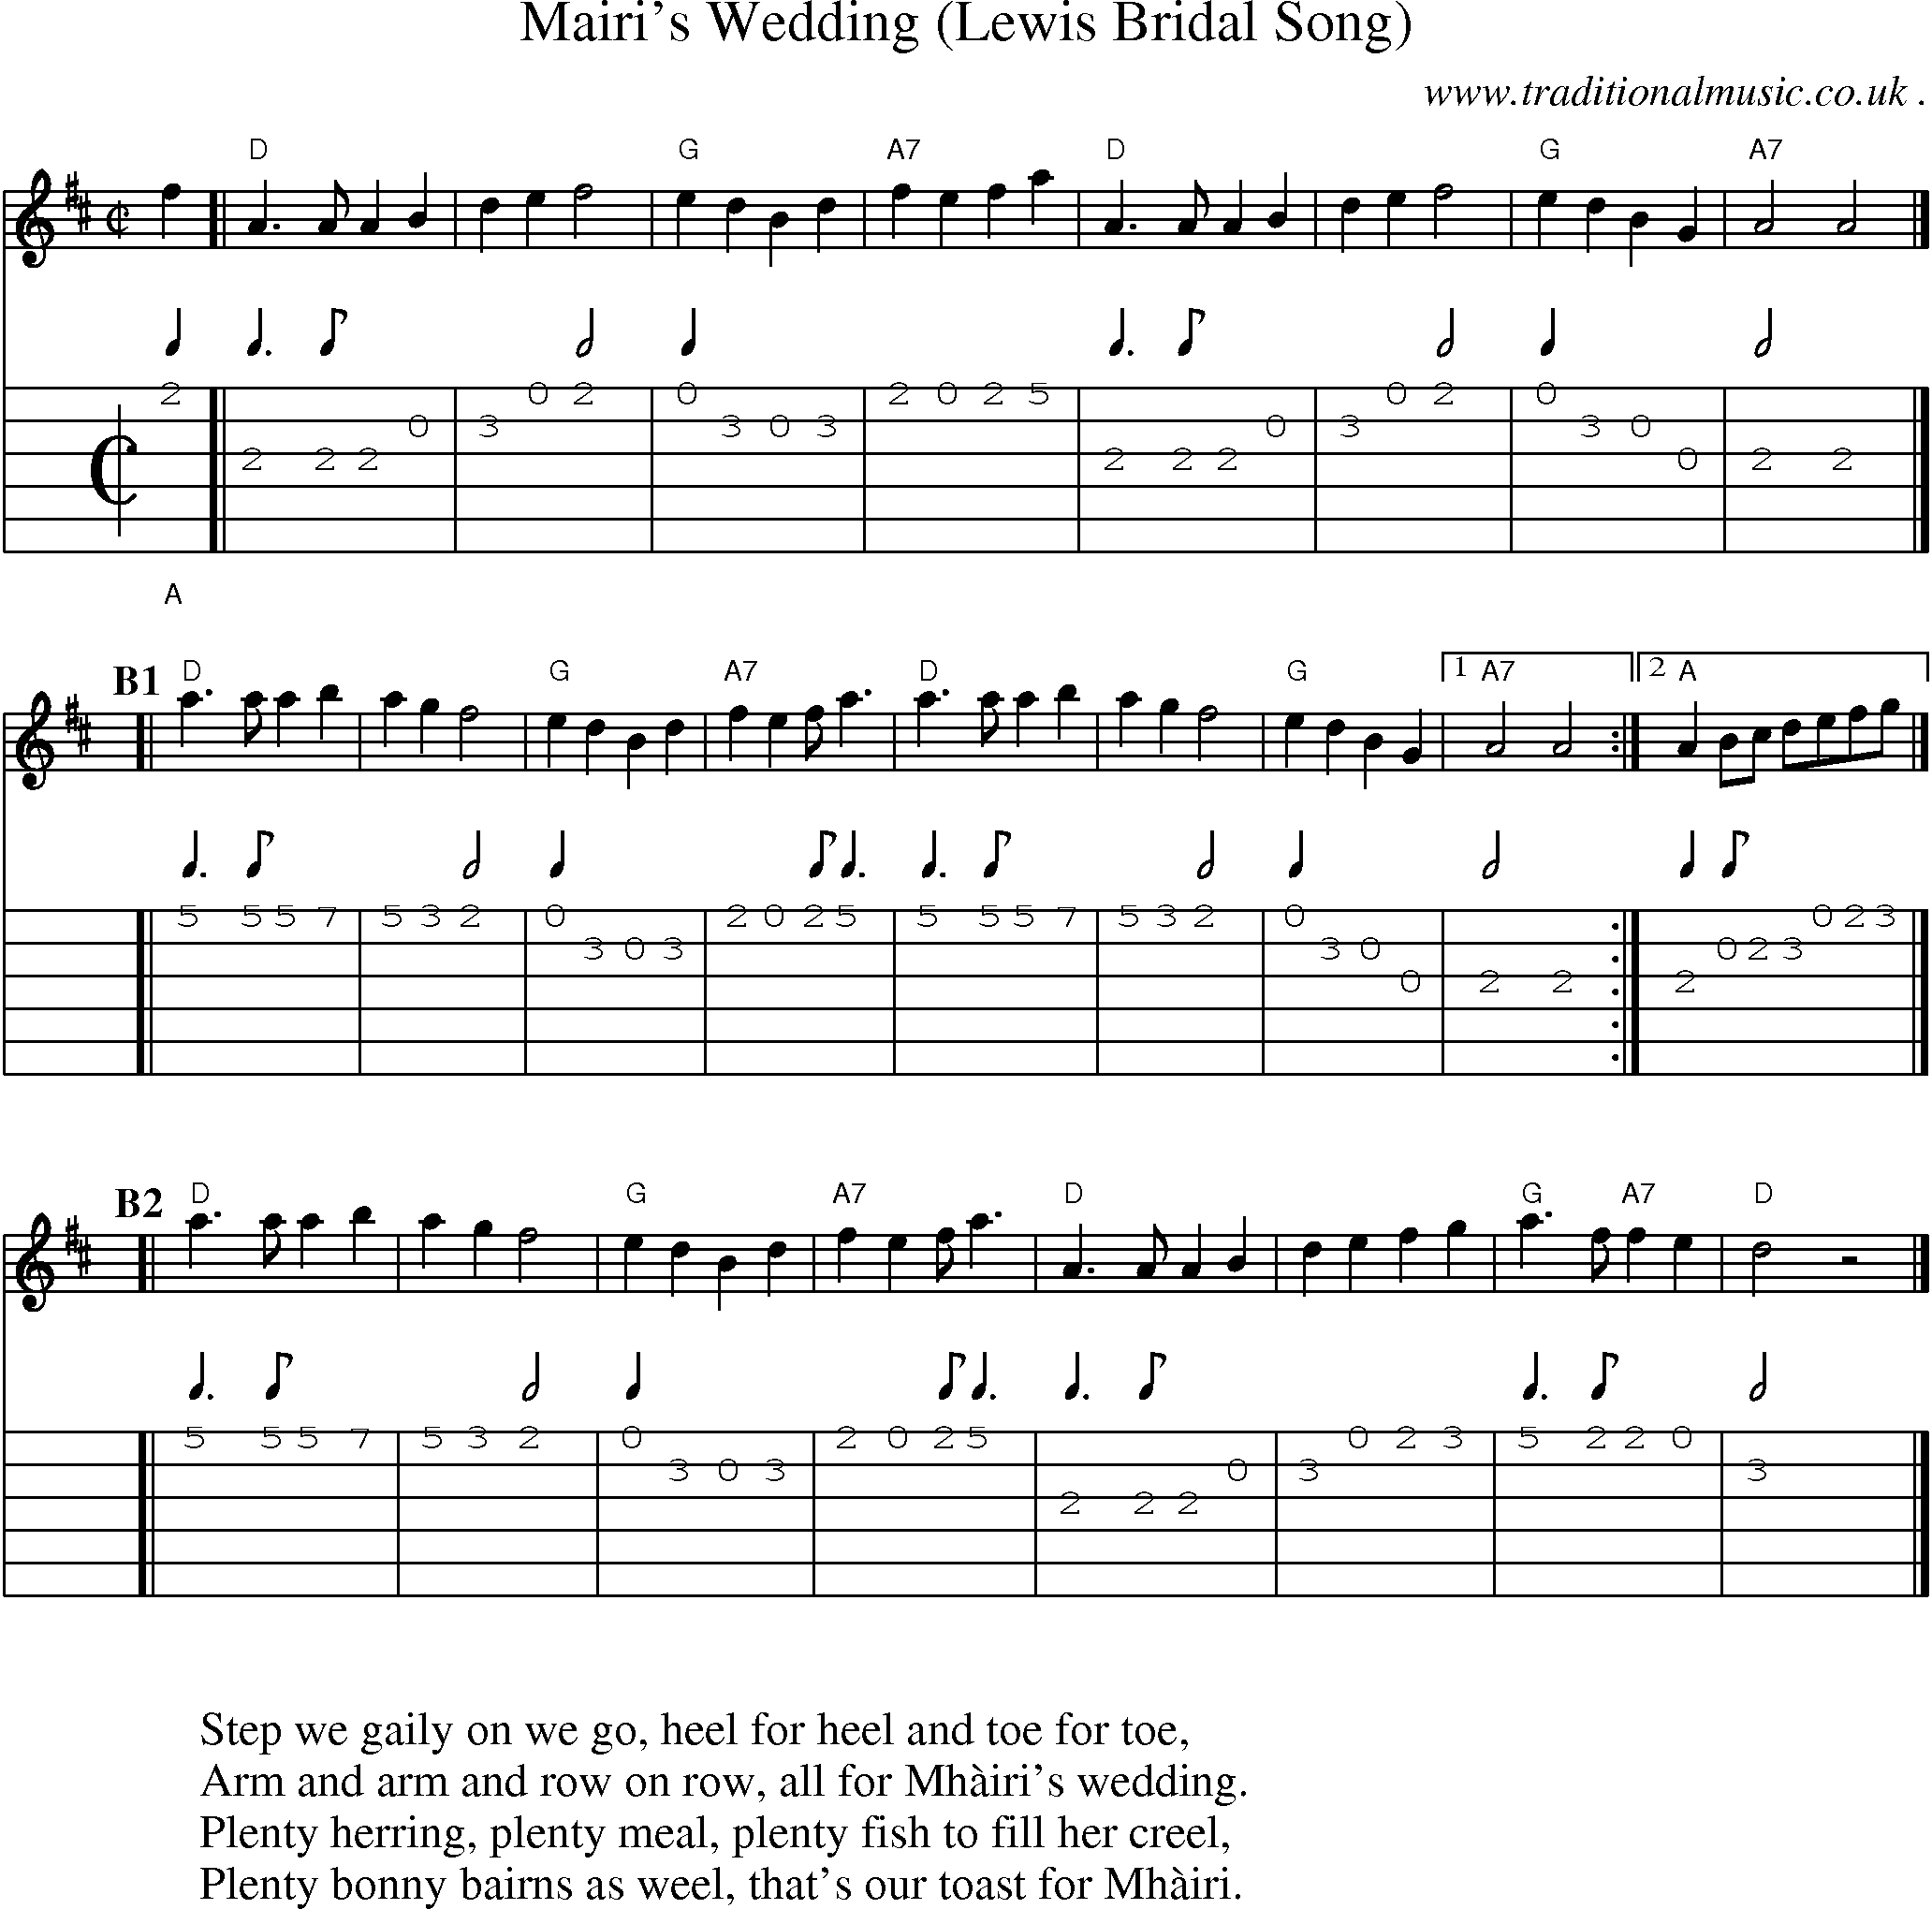 ... score, Chords and Guitar Tabs for Mairis Wedding Lewis Bridal Song